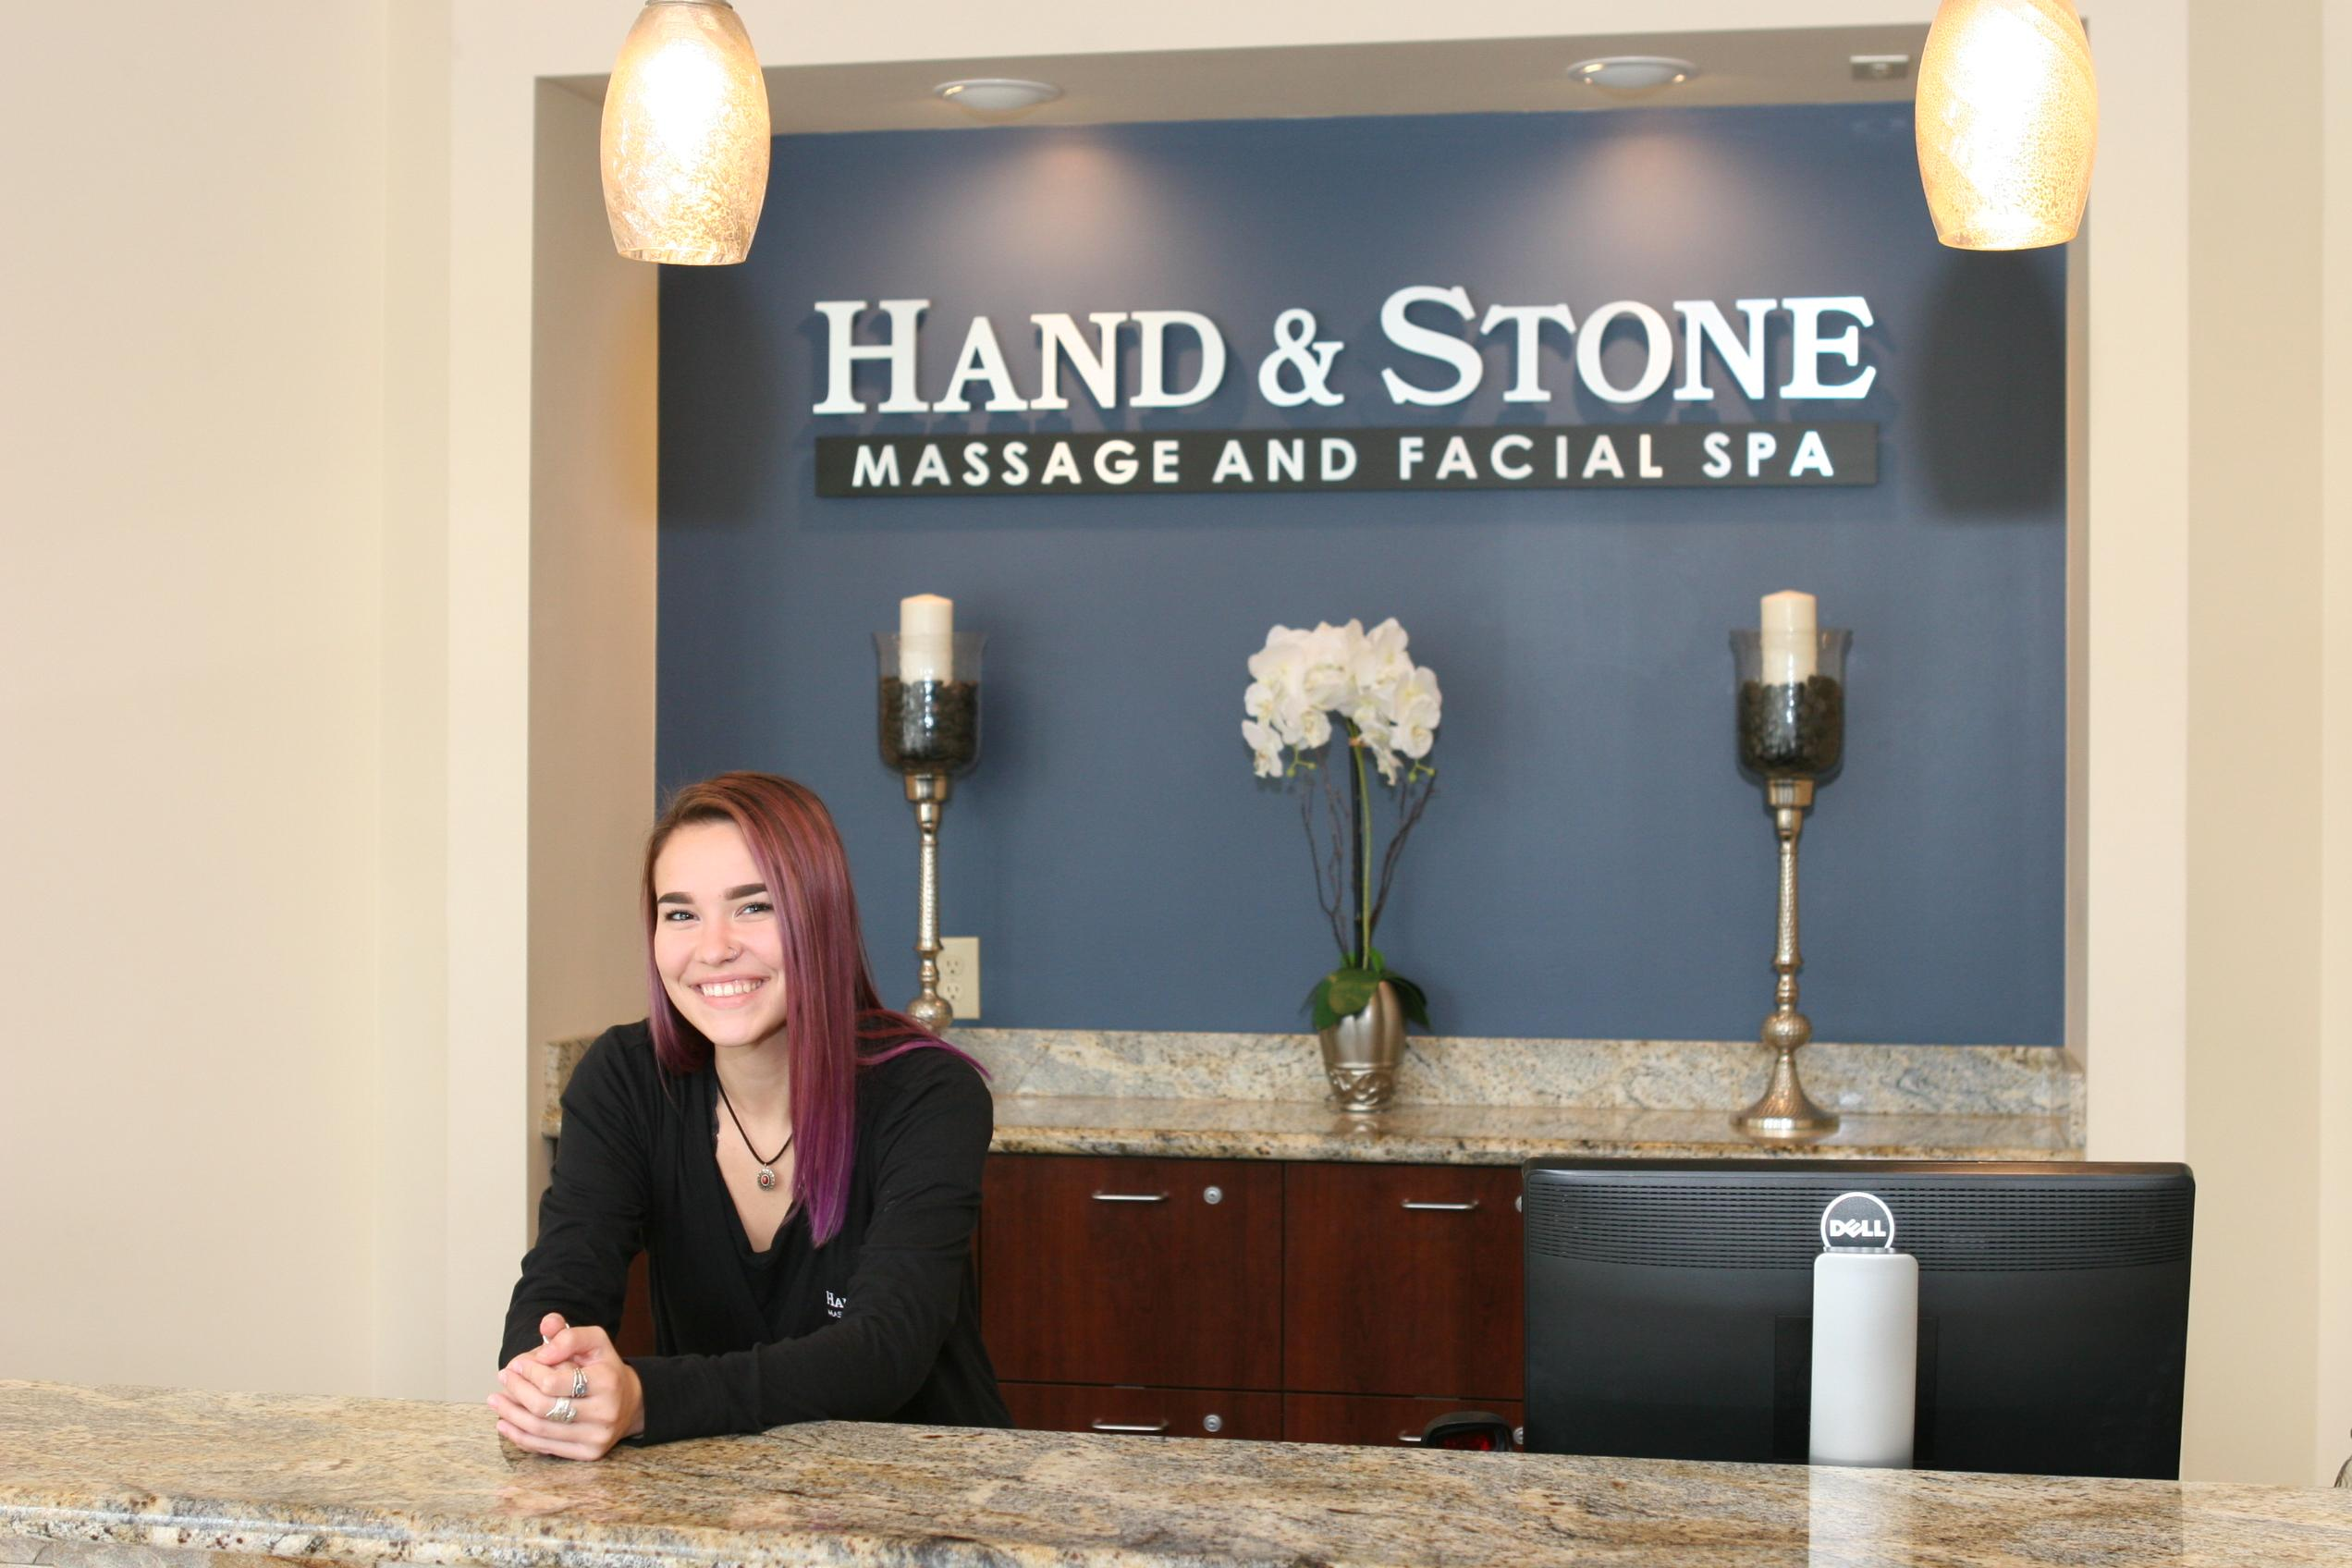 One of our Friendly Spa Associates